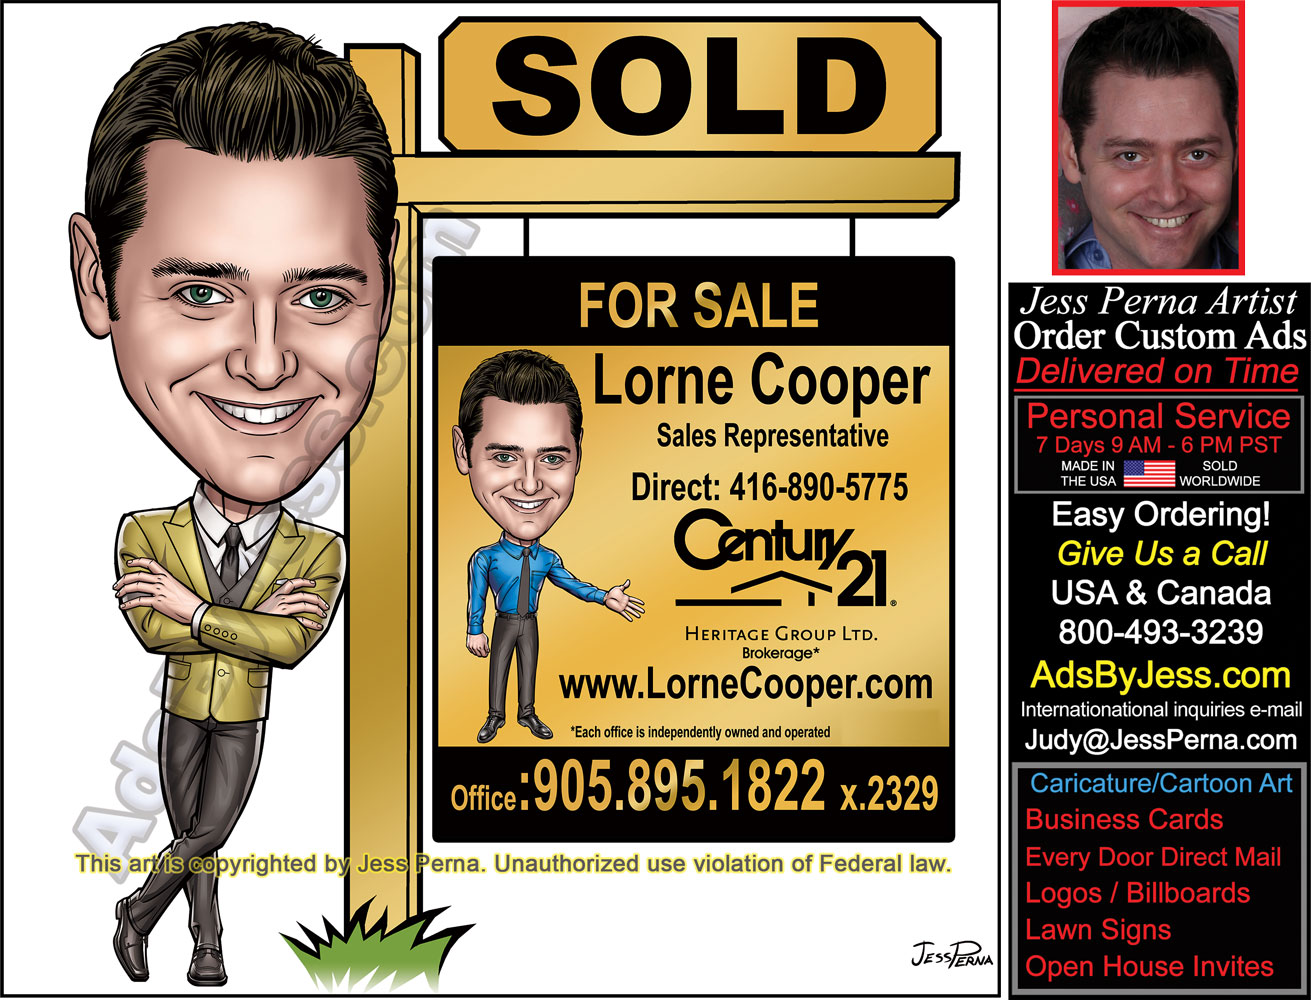 How to order ad cartoons and caricatures century 21 business cards order century 21 business cards lawn signs reheart Images